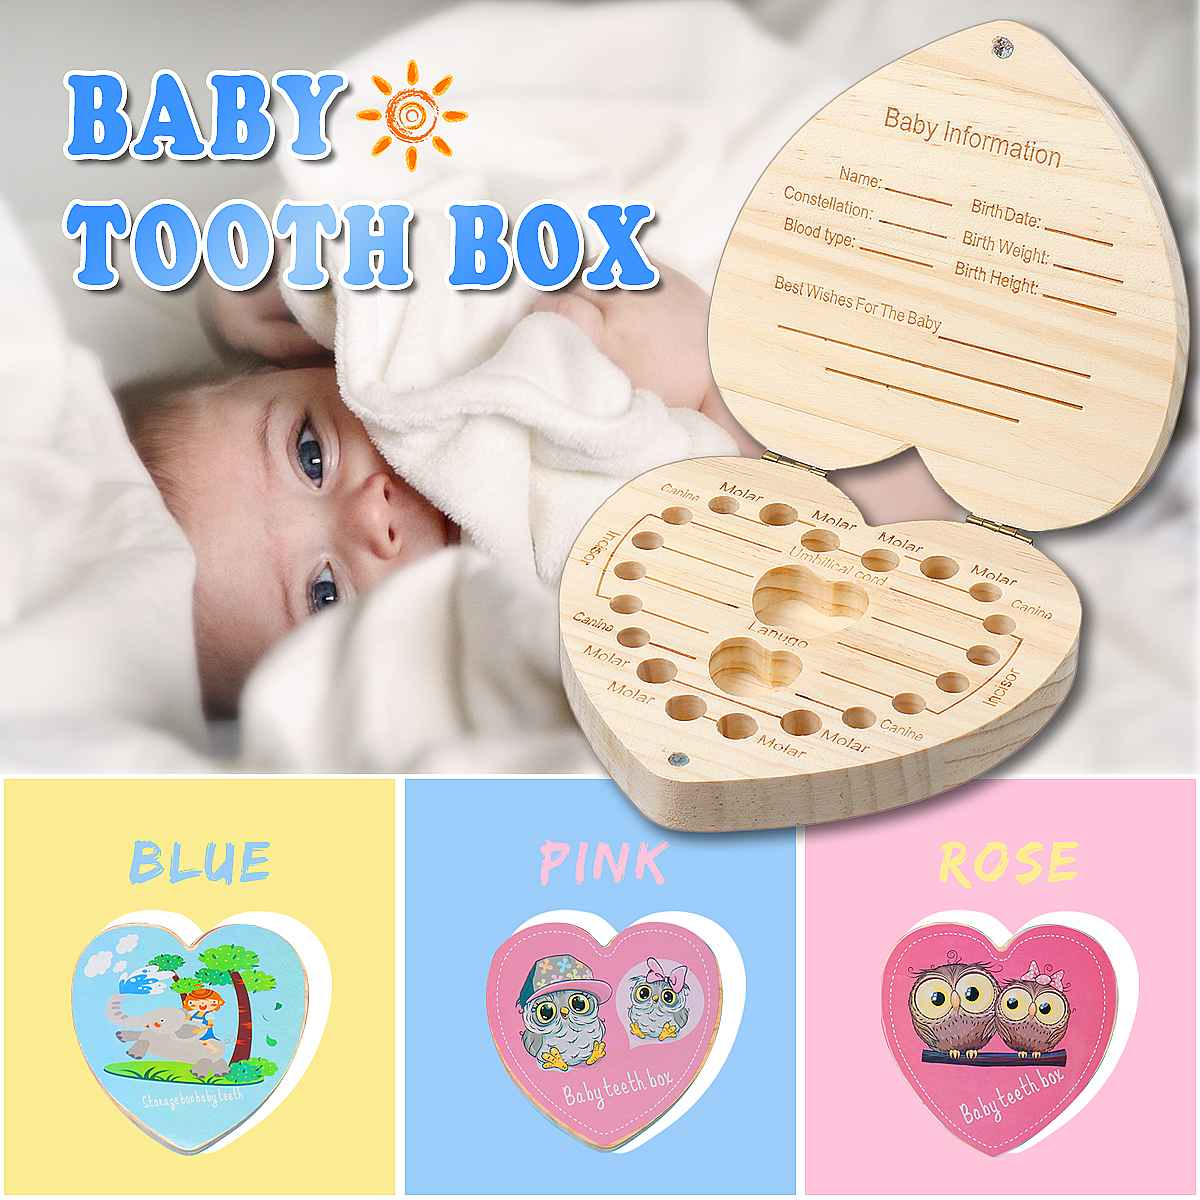 Wooden Kids Baby Tooth Box Organizer Milk Teeth Wood Storage Box Boy Girl Save Teeth First Holder Keepsake Baby Souvenirs Gift